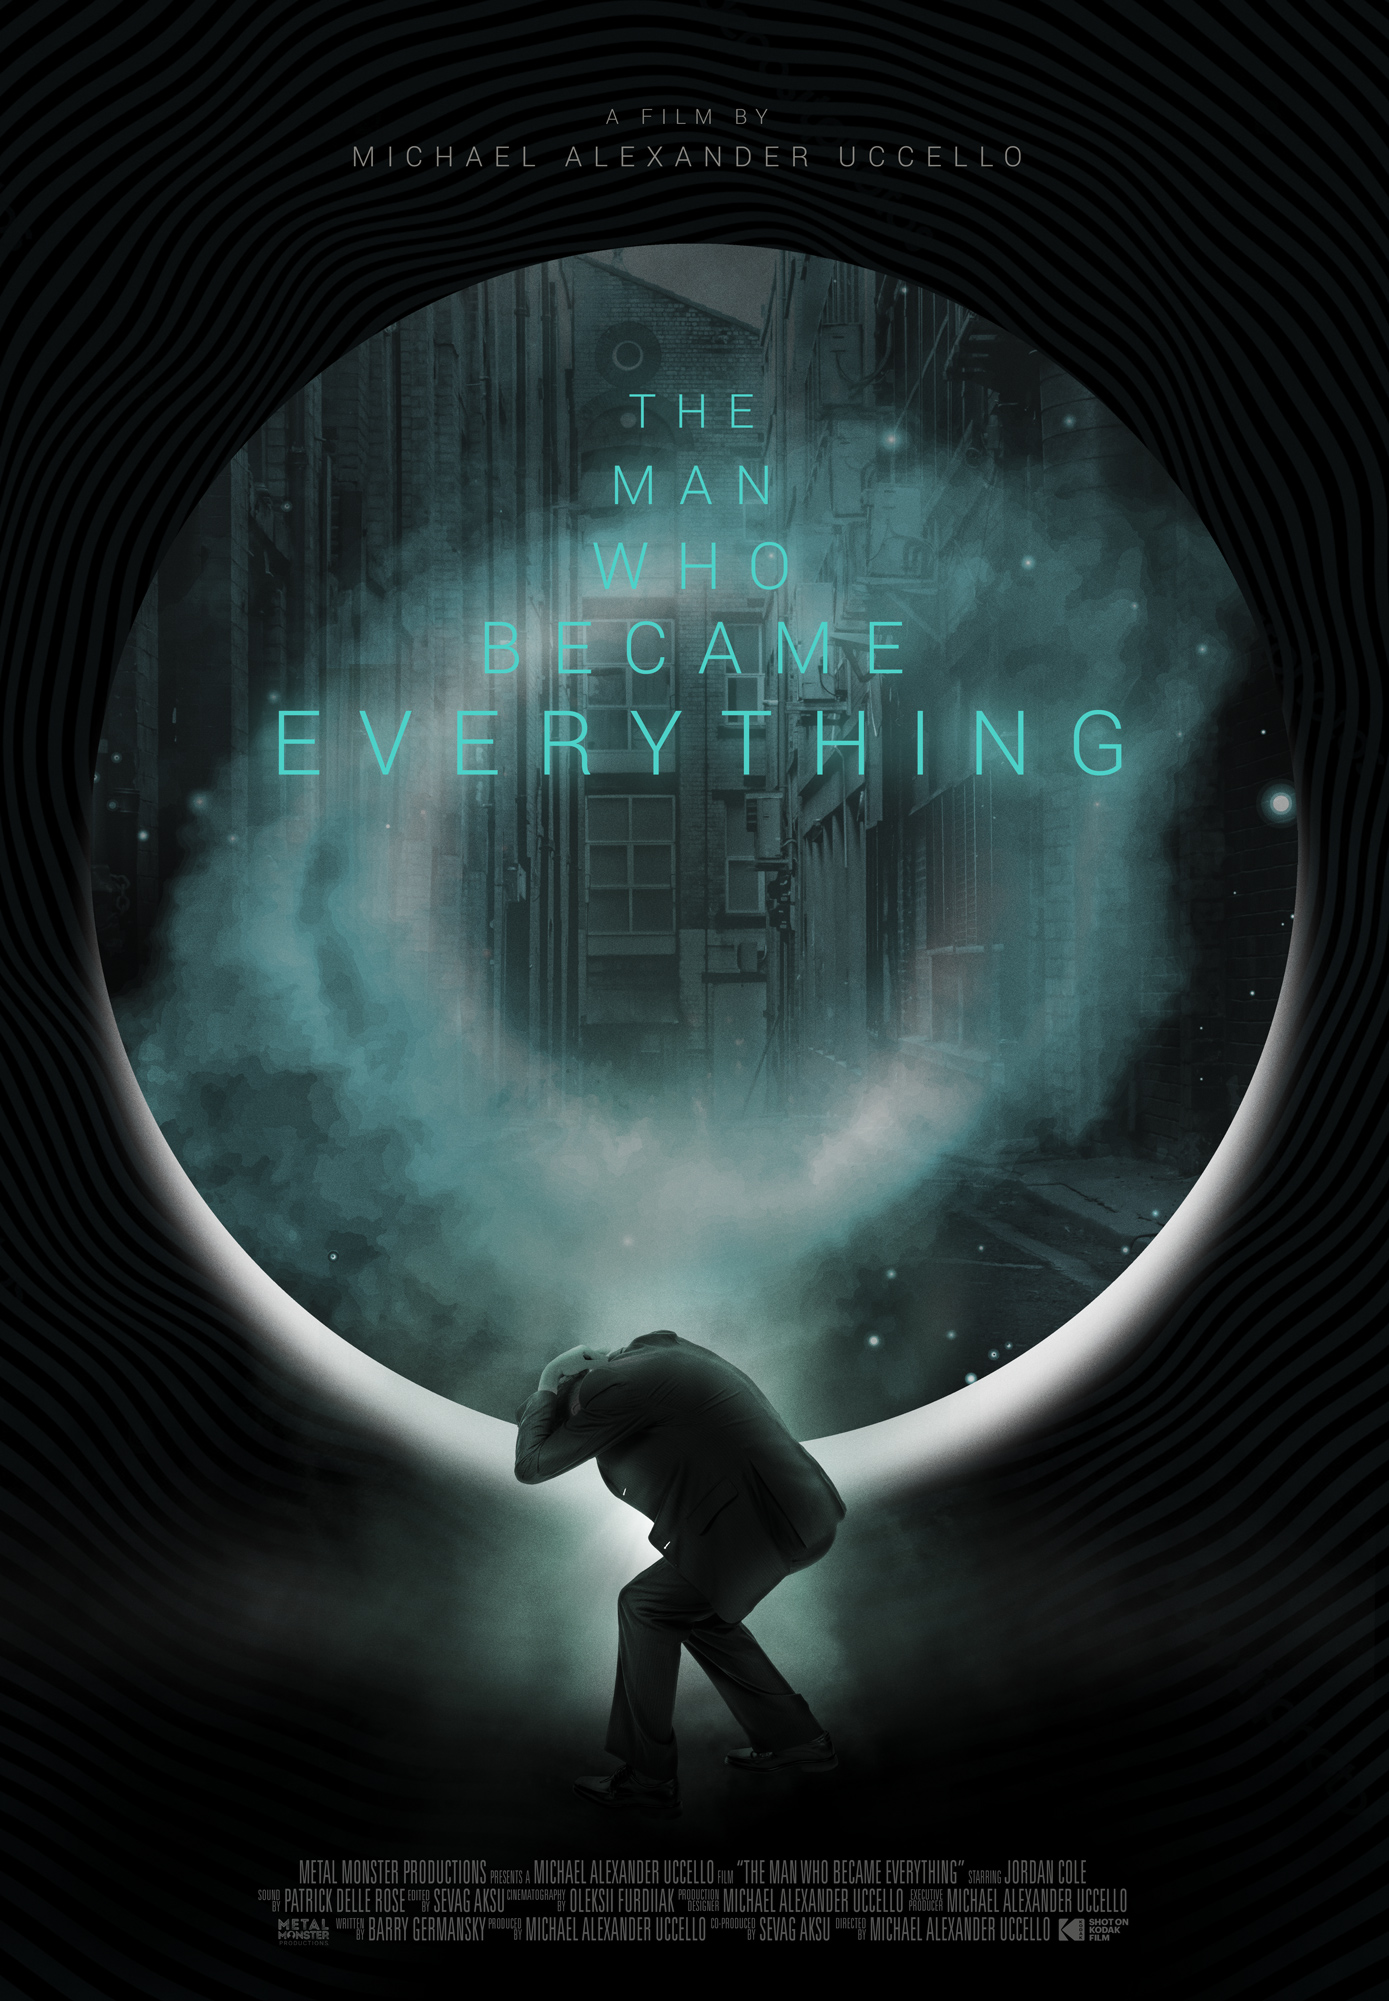 the man who became everything by Michael Alexander Uccello